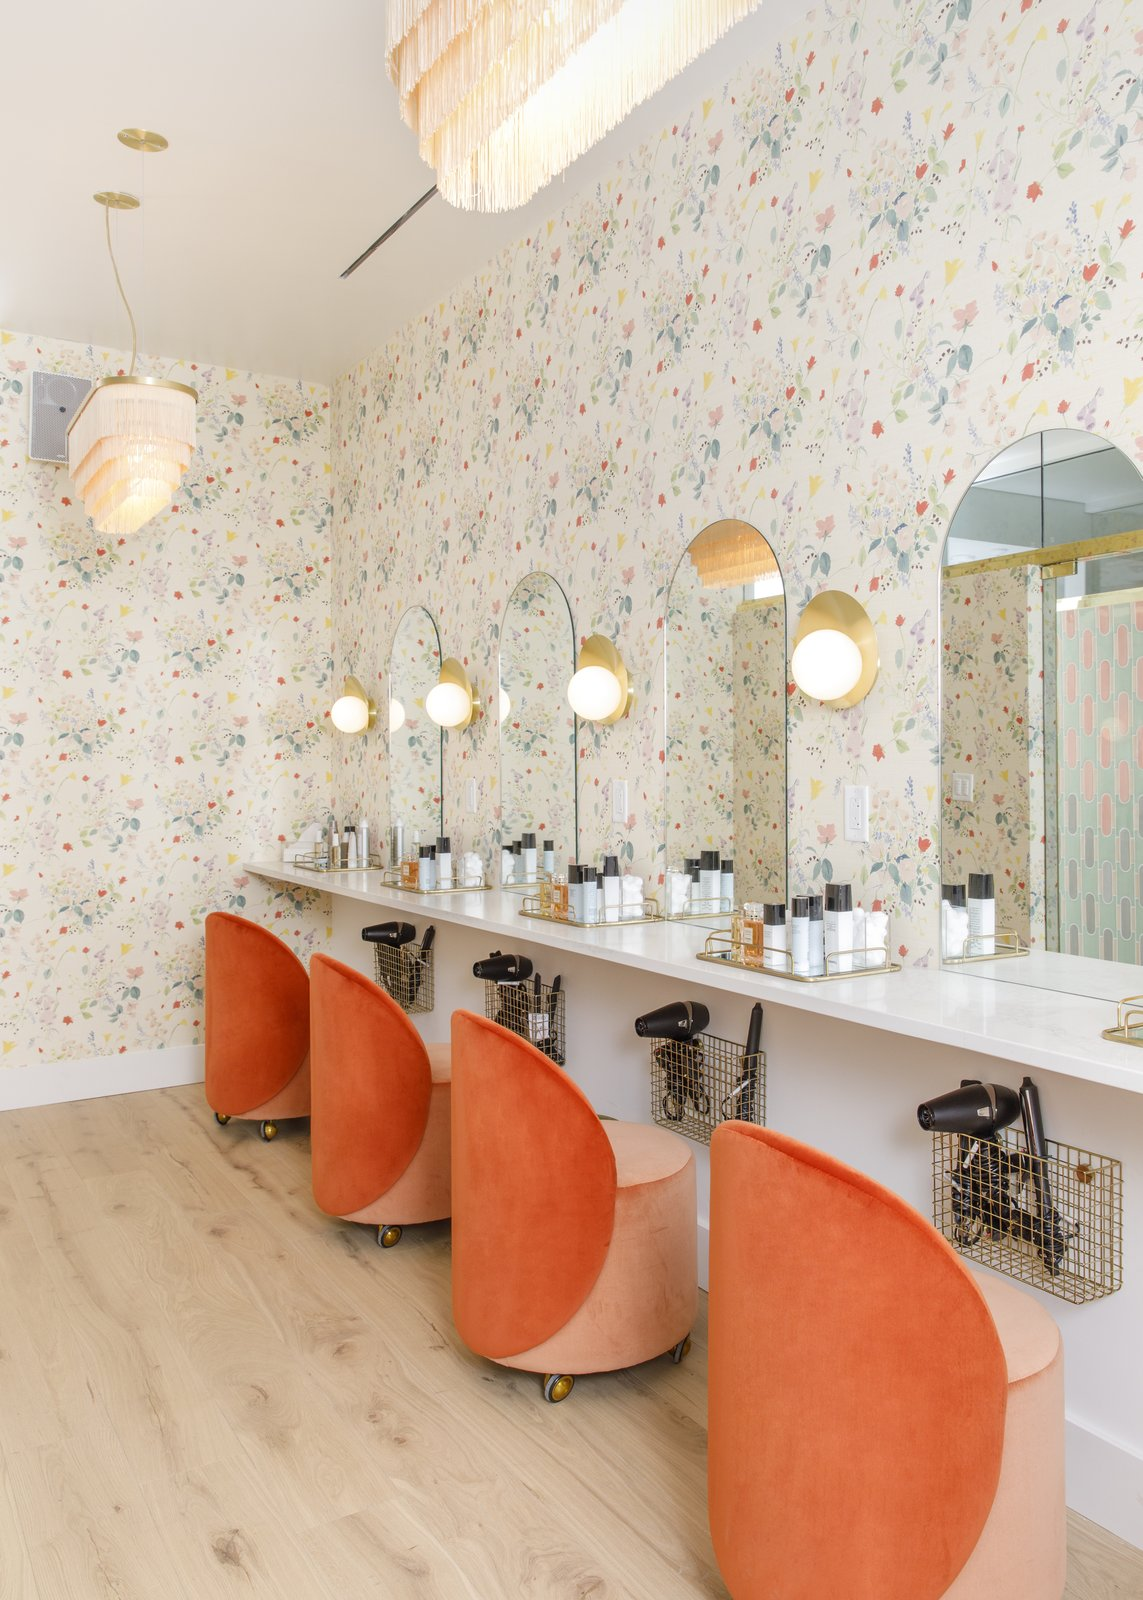 Bath Room, Wall Lighting, Light Hardwood Floor, and Pendant Lighting In the beauty room, floral wallpaper from Caitlin McGauley picks up the tangerine color of the chairs from Douglas & Bec. Wall light sculptures from Cedar & Moss illuminate the mirrors.   Photo 12 of 13 in Feast Your Eyes on Washington D.C.'s Newest Co-Working Space For Women